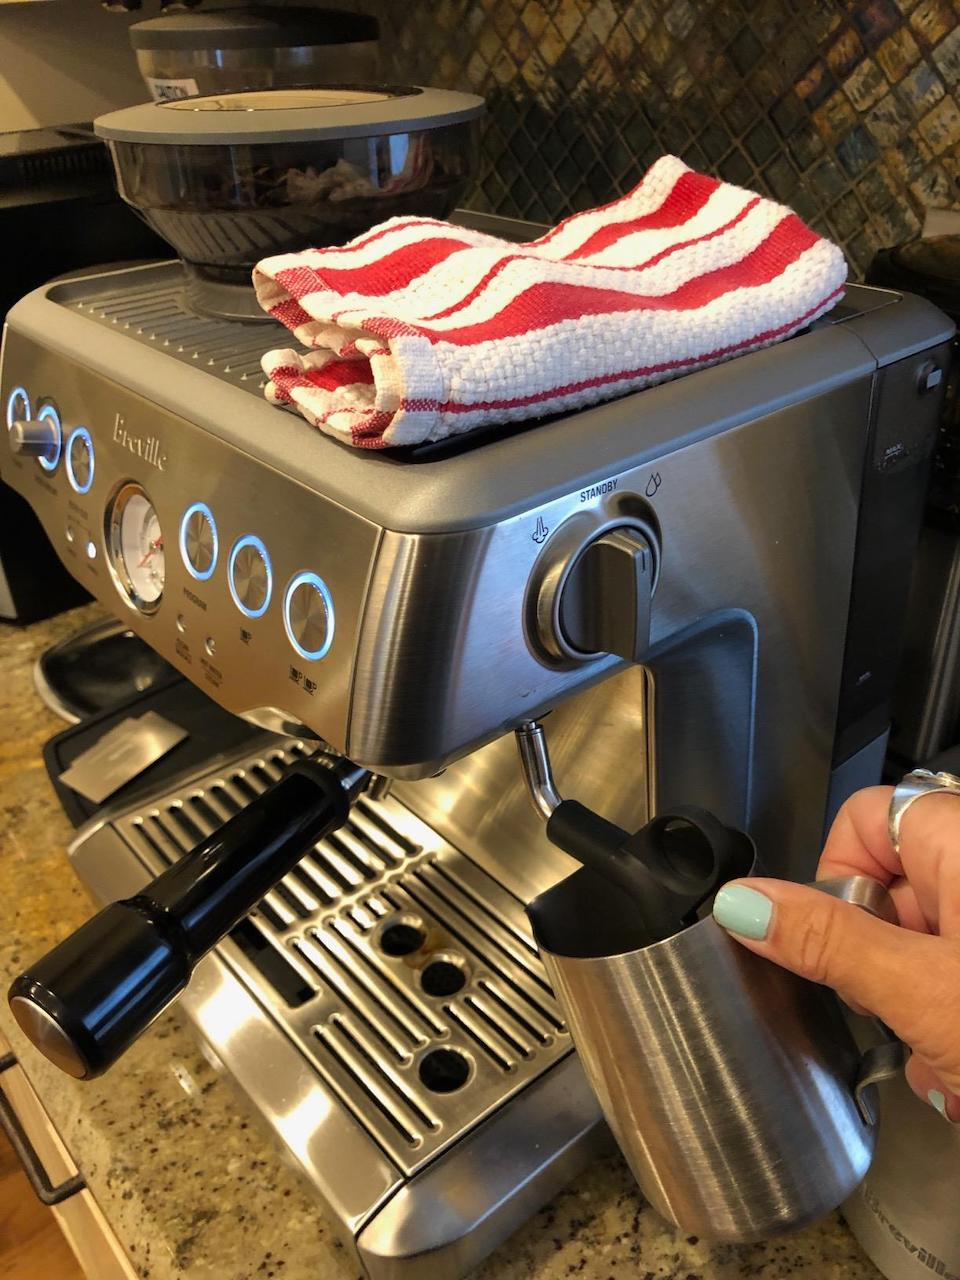 frothing milk with Breville espresso machine